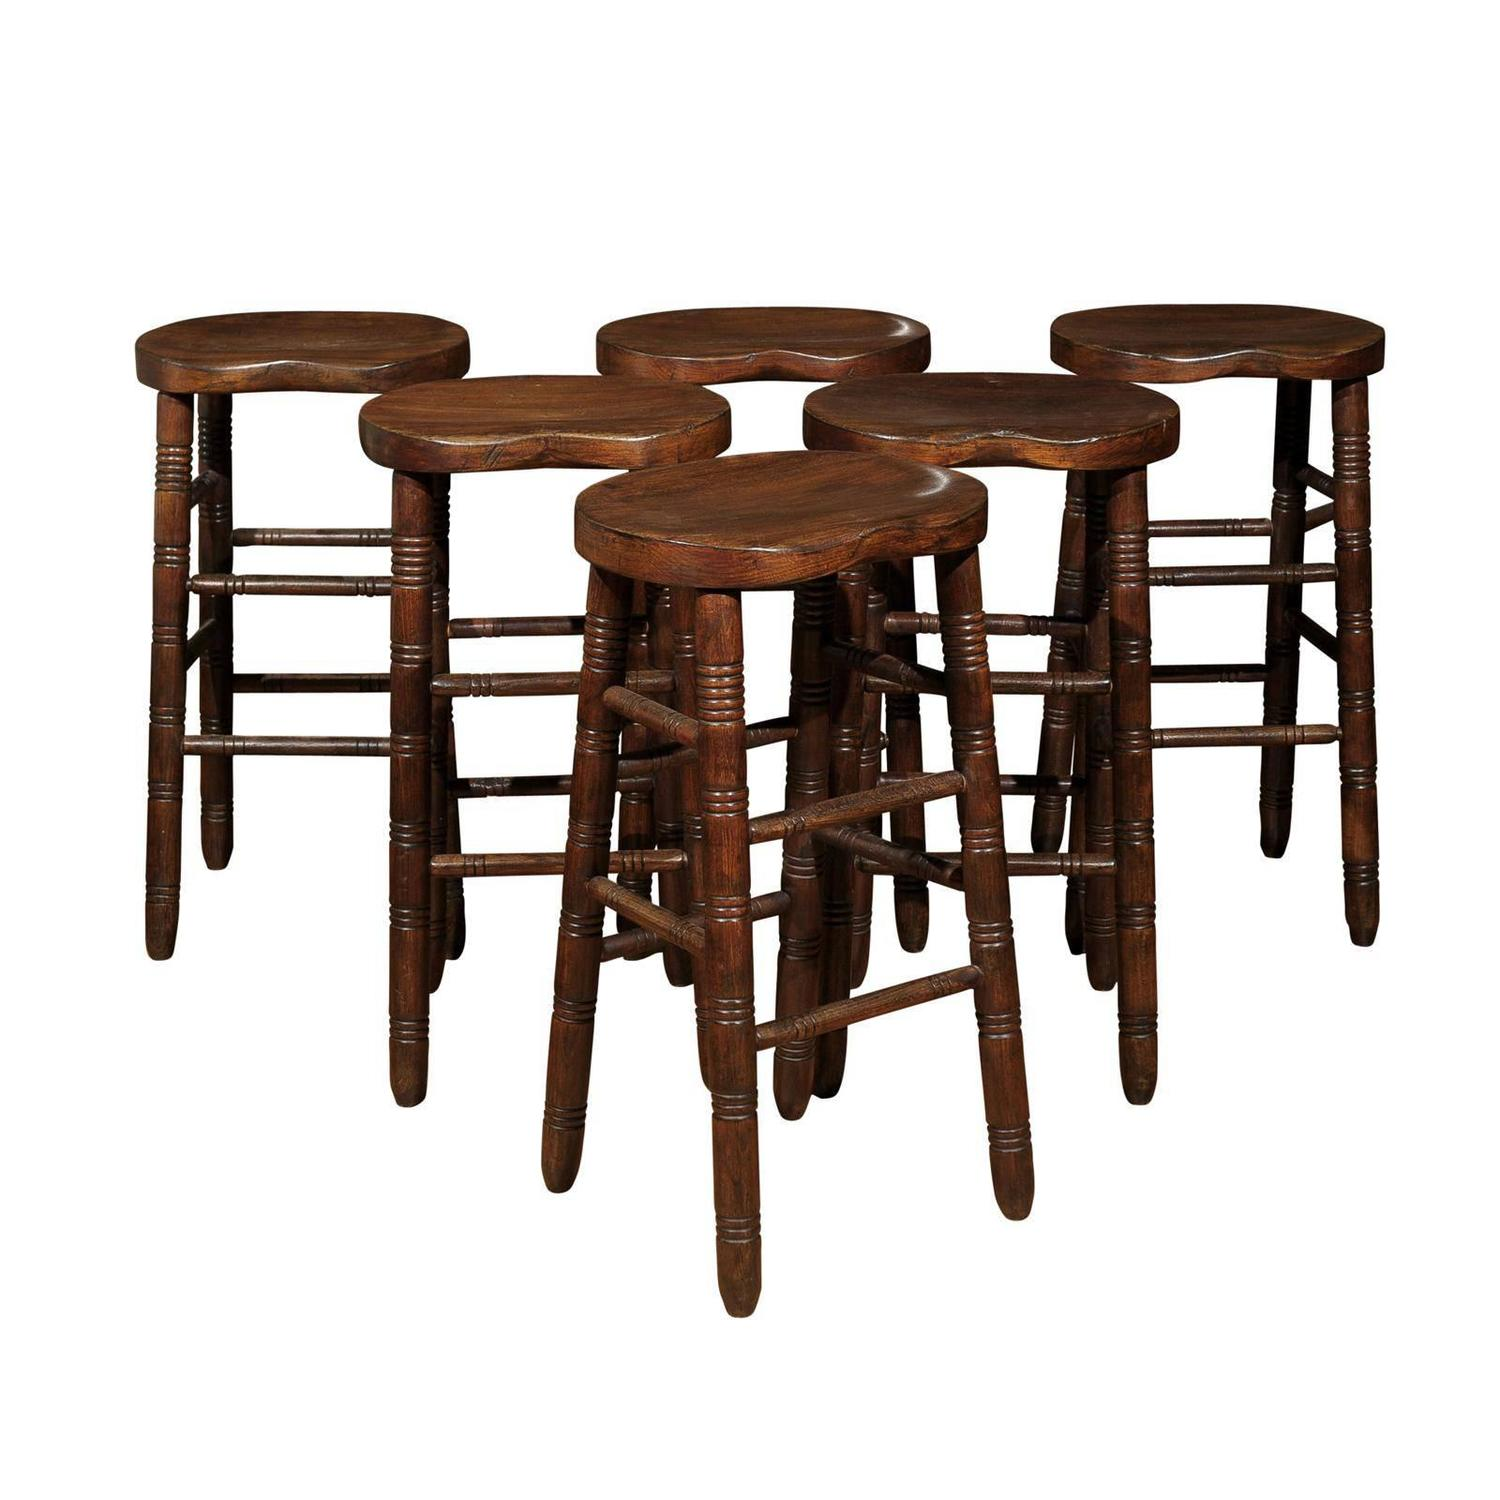 Set Of Four Victorian Stools Circa 1890 For Sale At 1stdibs